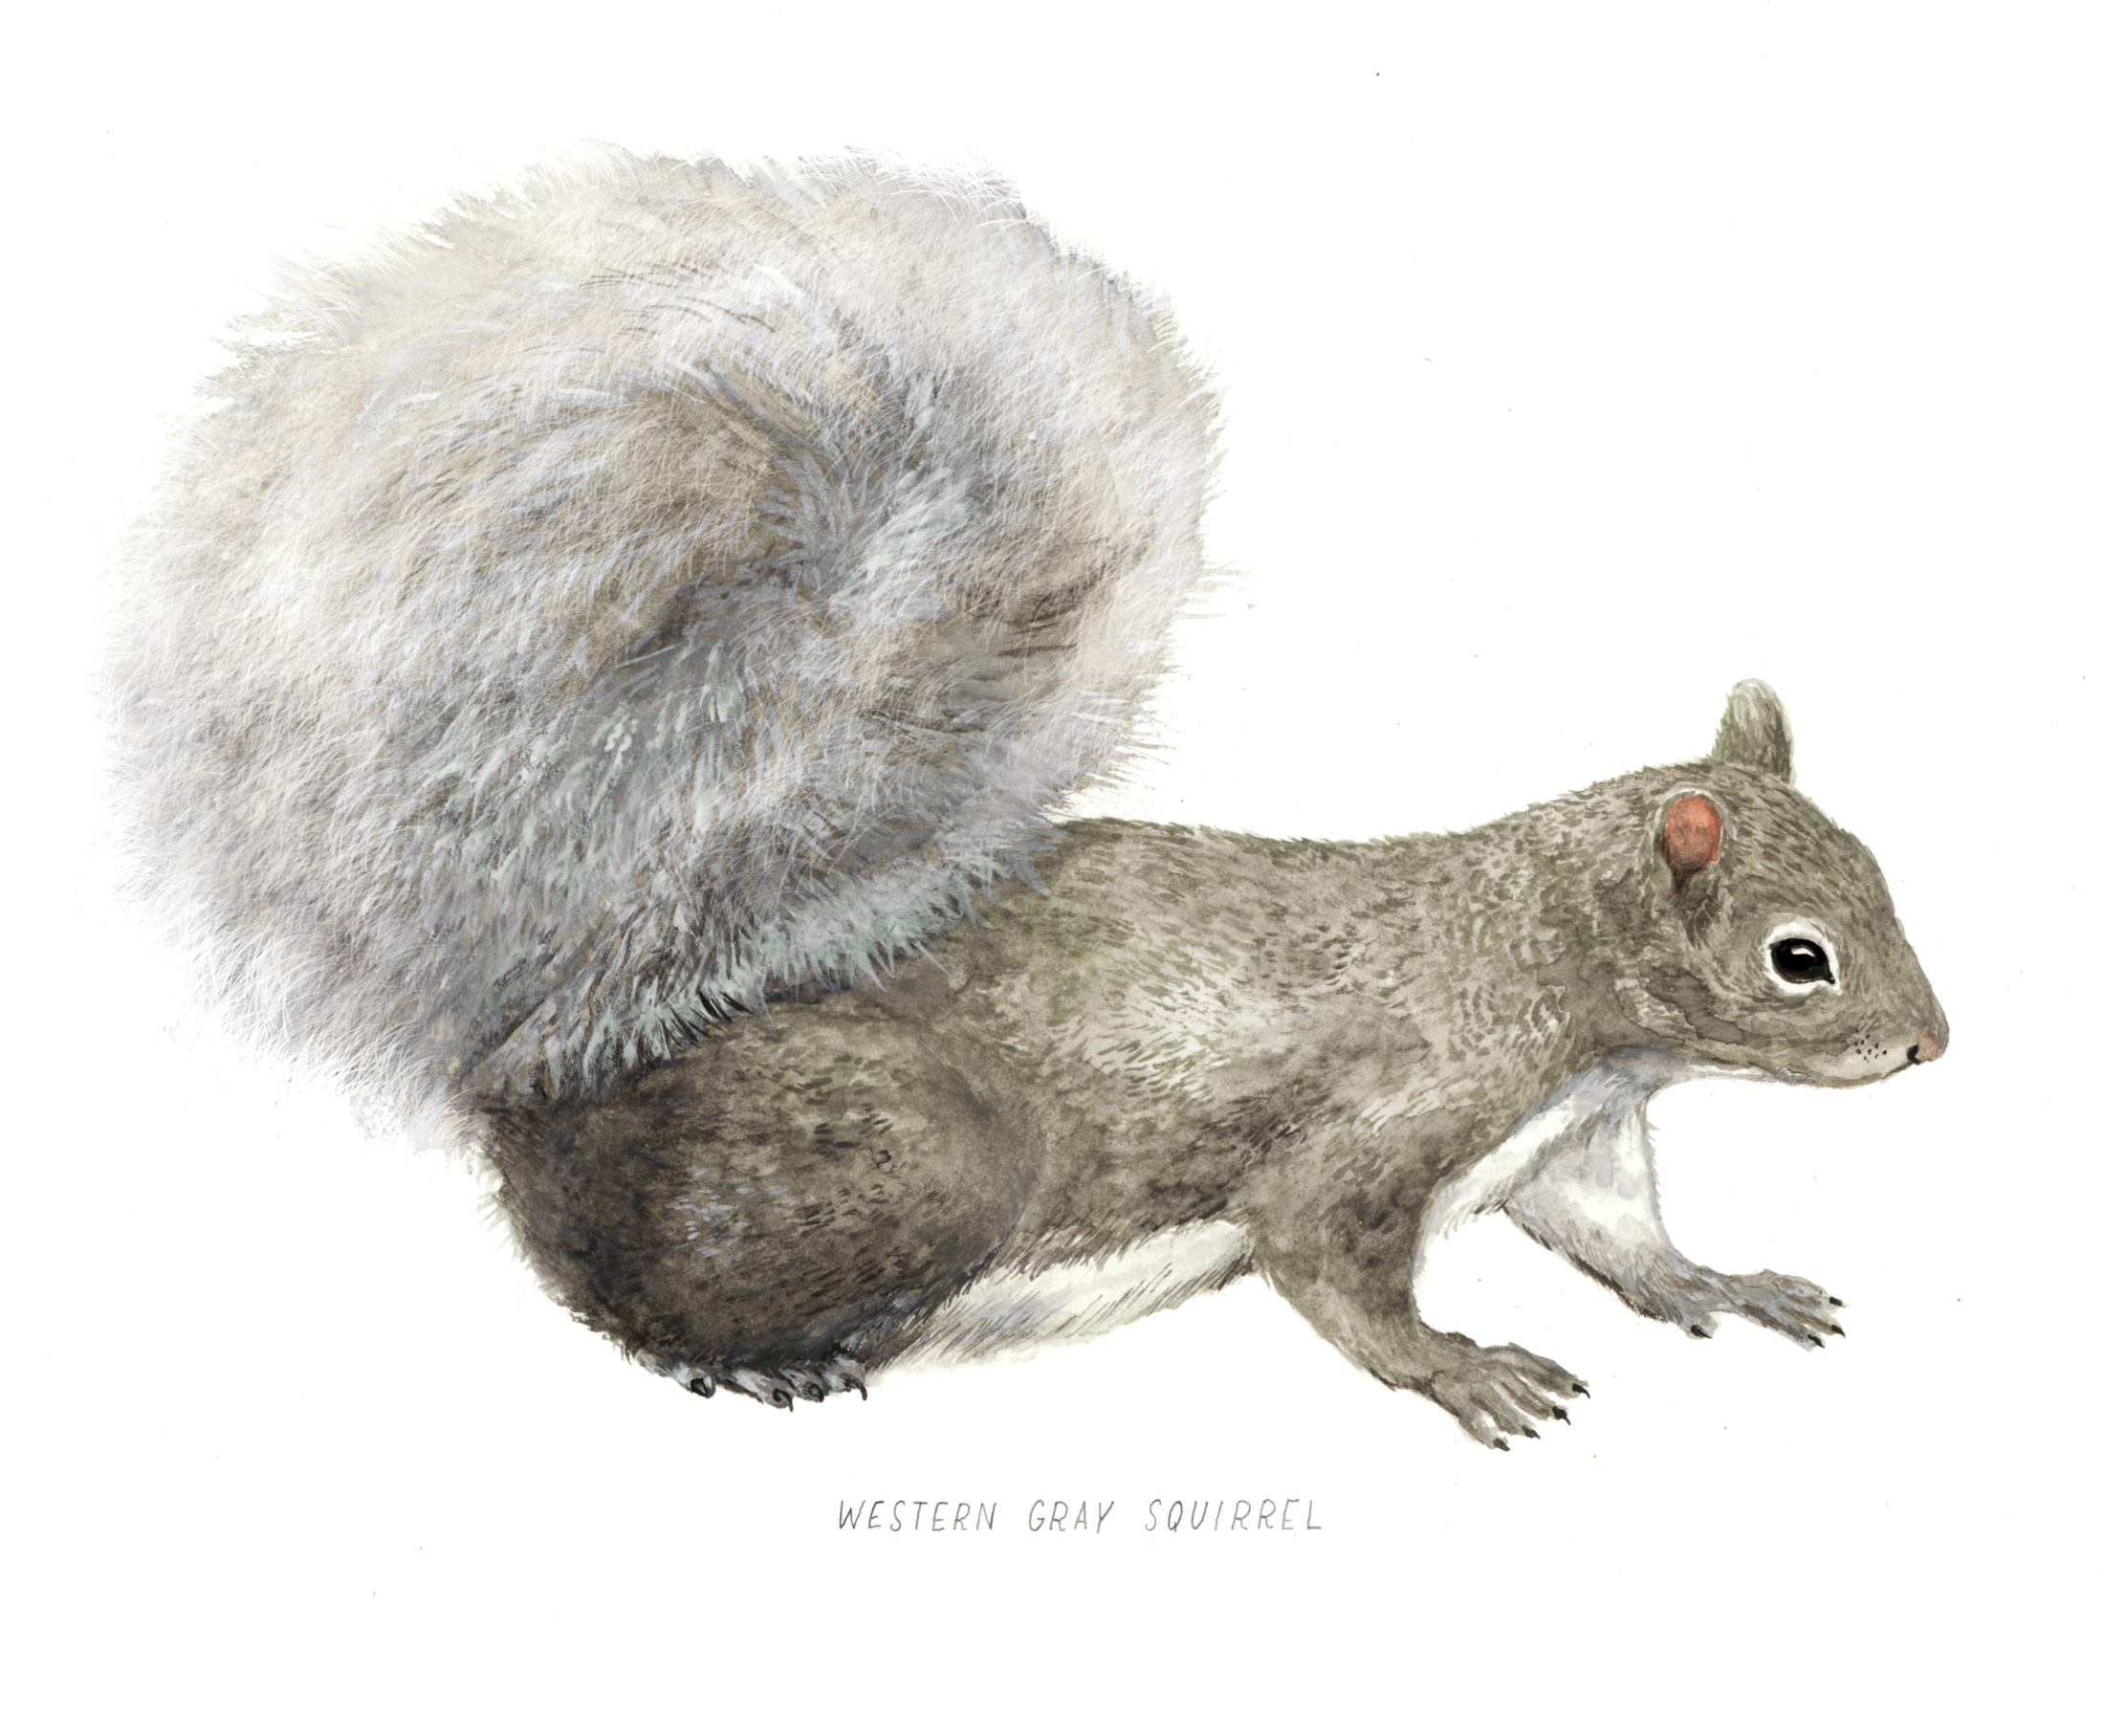 Squirrel illustration by Frida Clements